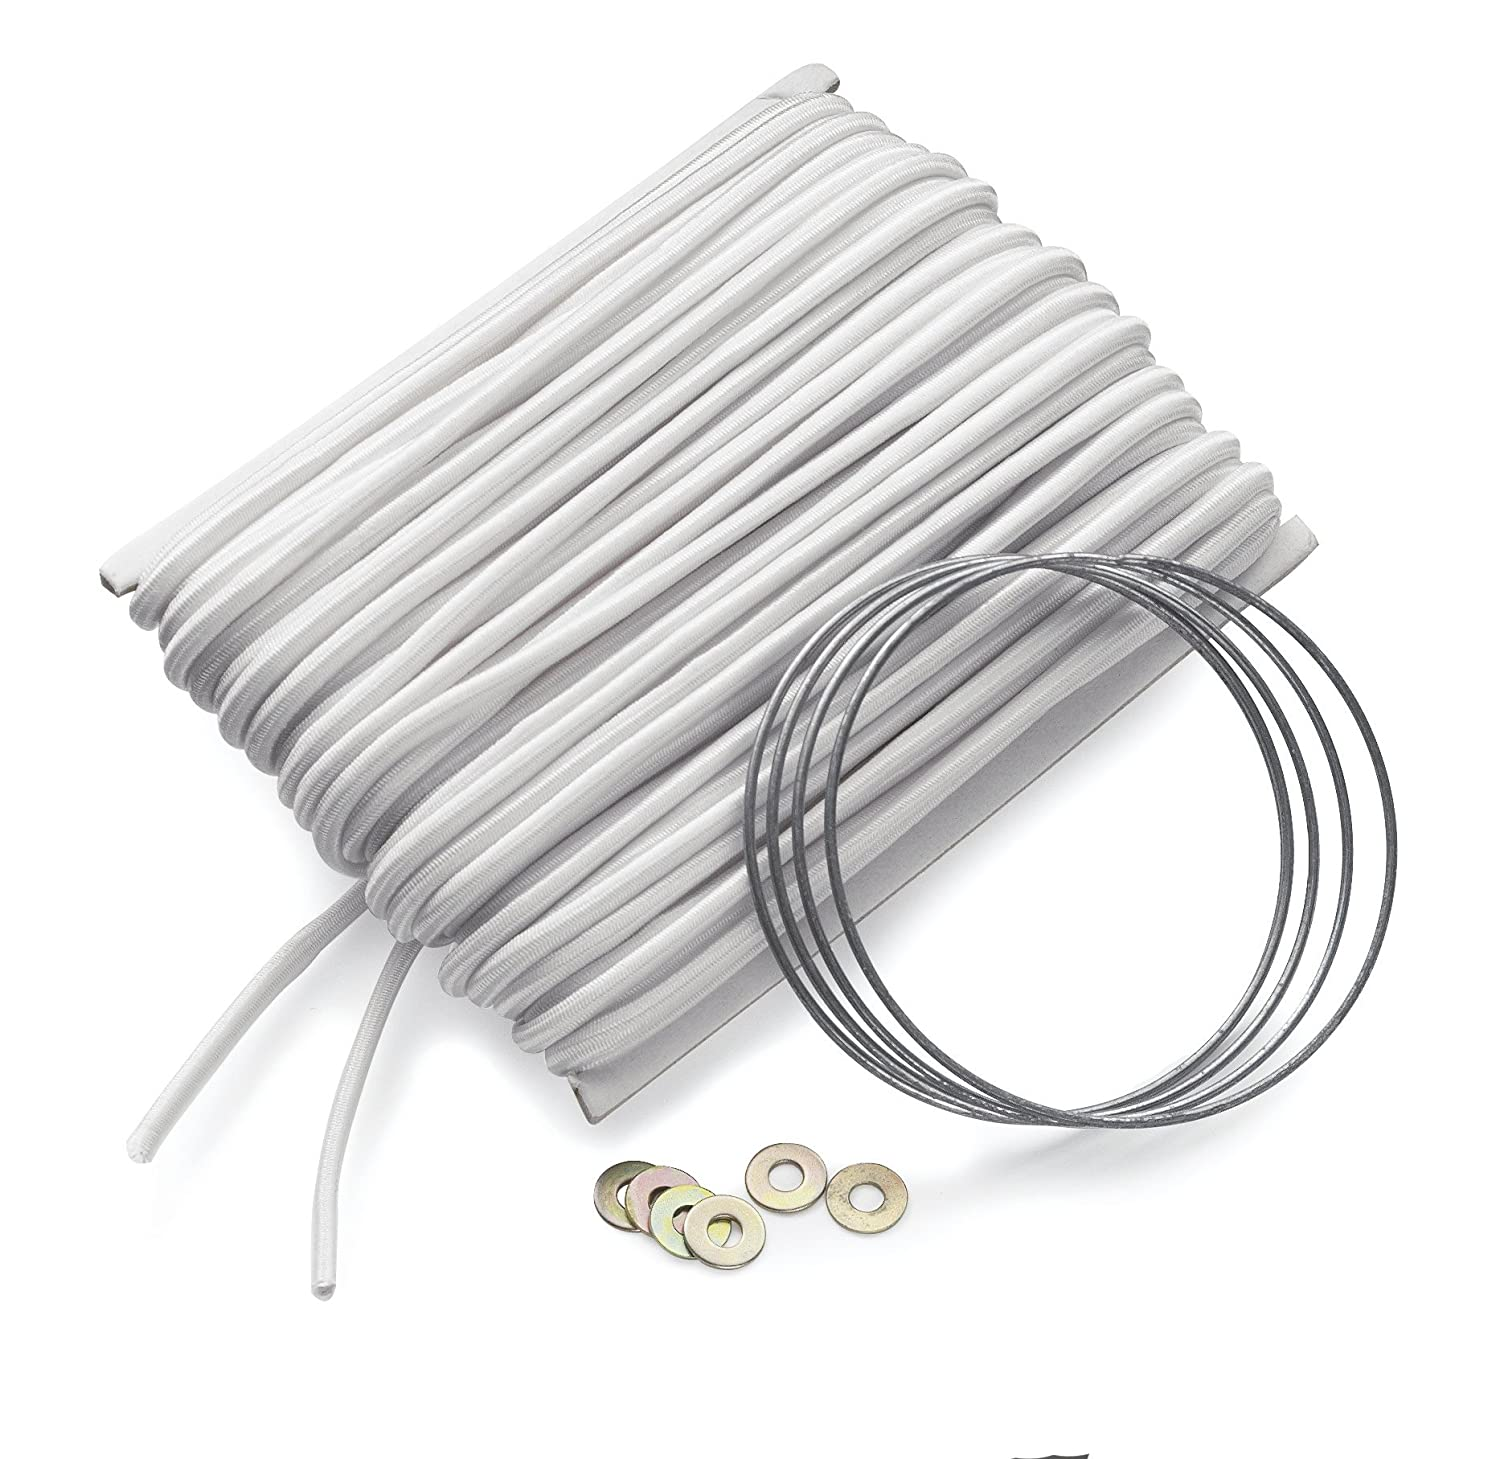 45ft Shock-Cord Installation Wire /& Washer Repair Kit For Fiberglass Tent Poles